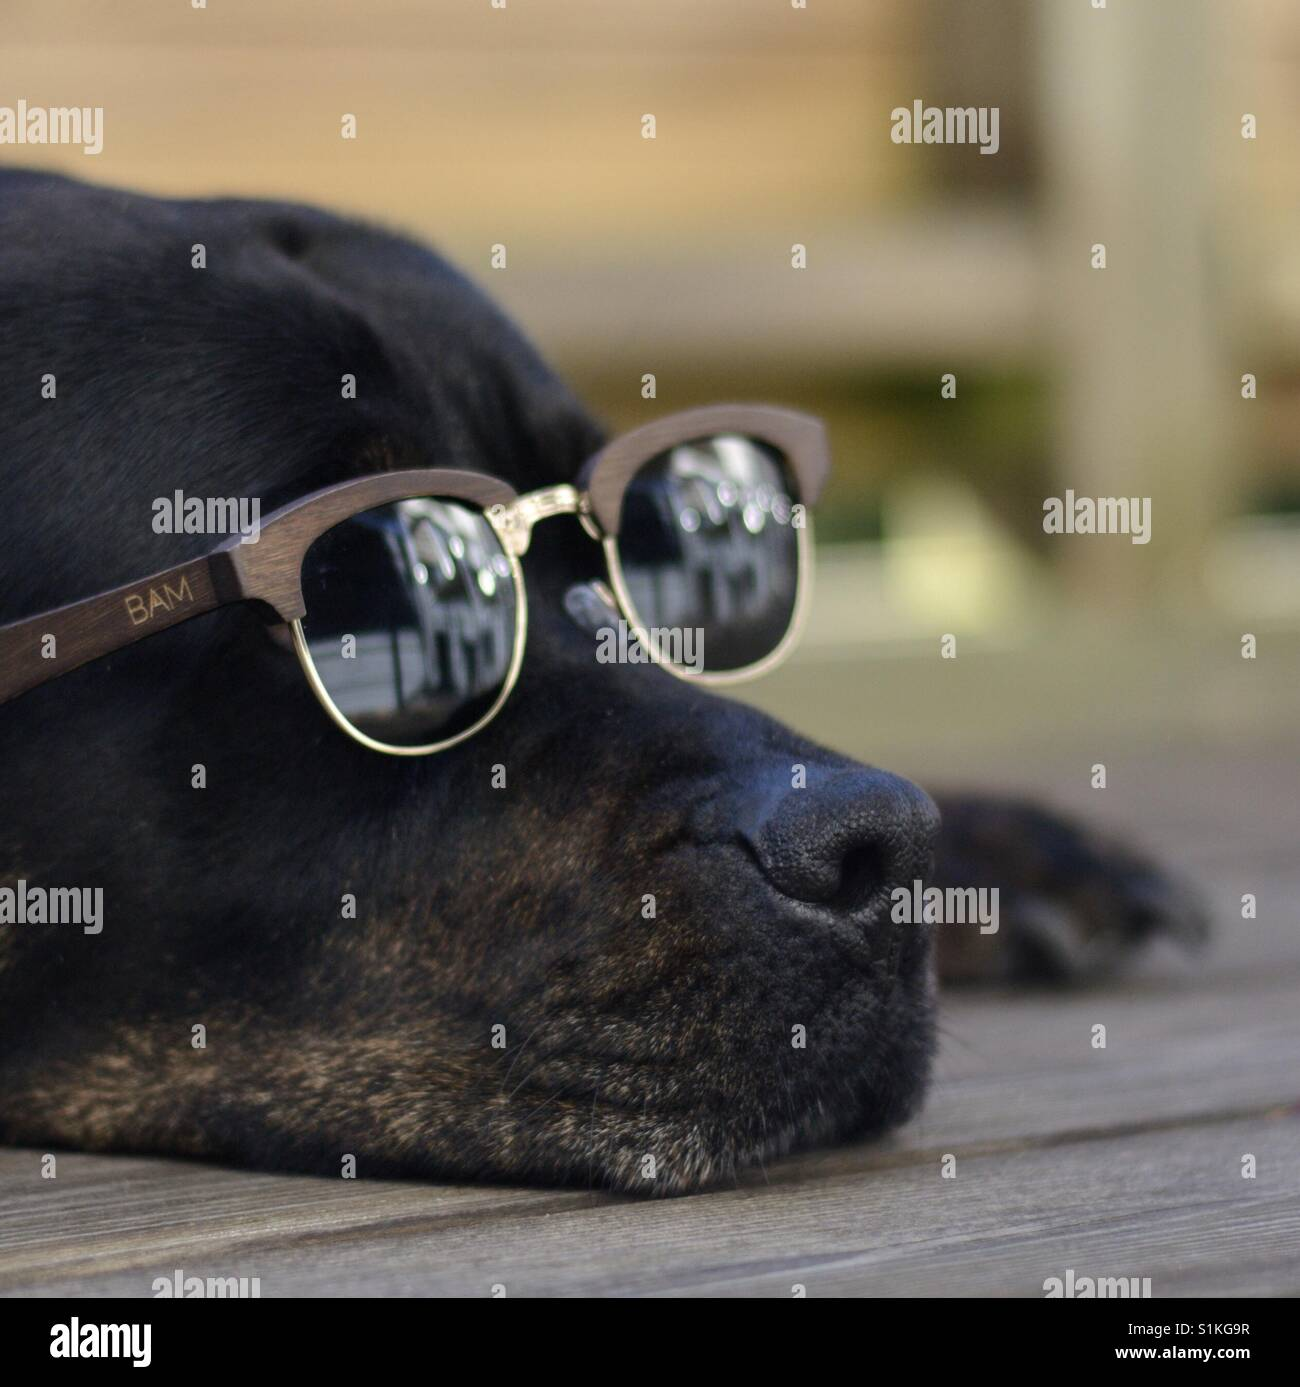 Lazy days in the sun. - Stock Image